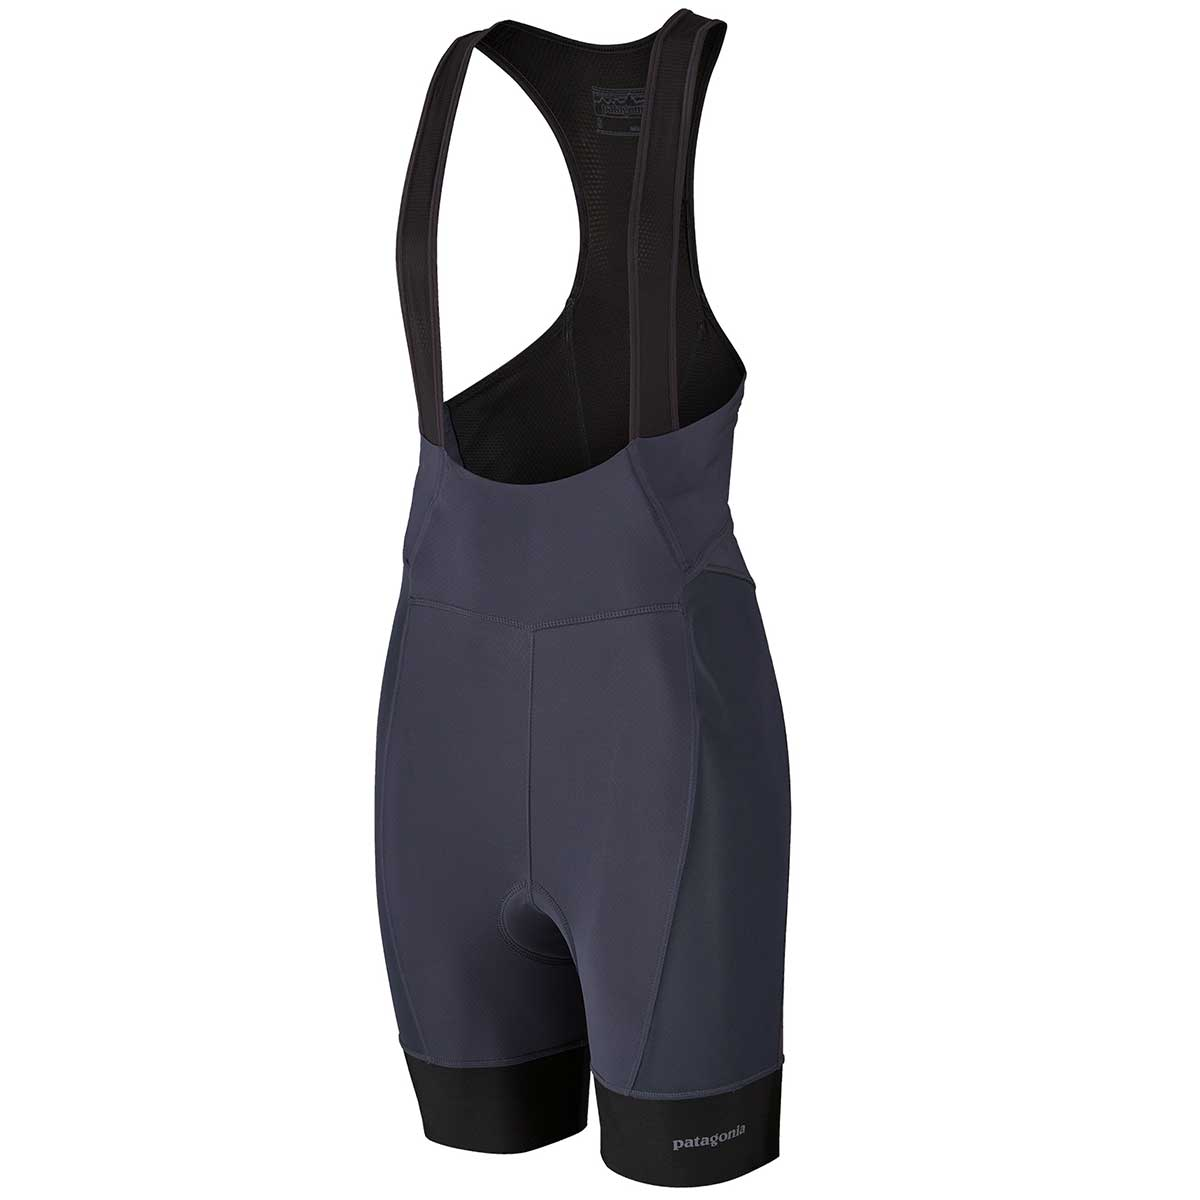 Patagonia women's Endless Ride Liner Bibs in Smolder Blue front view